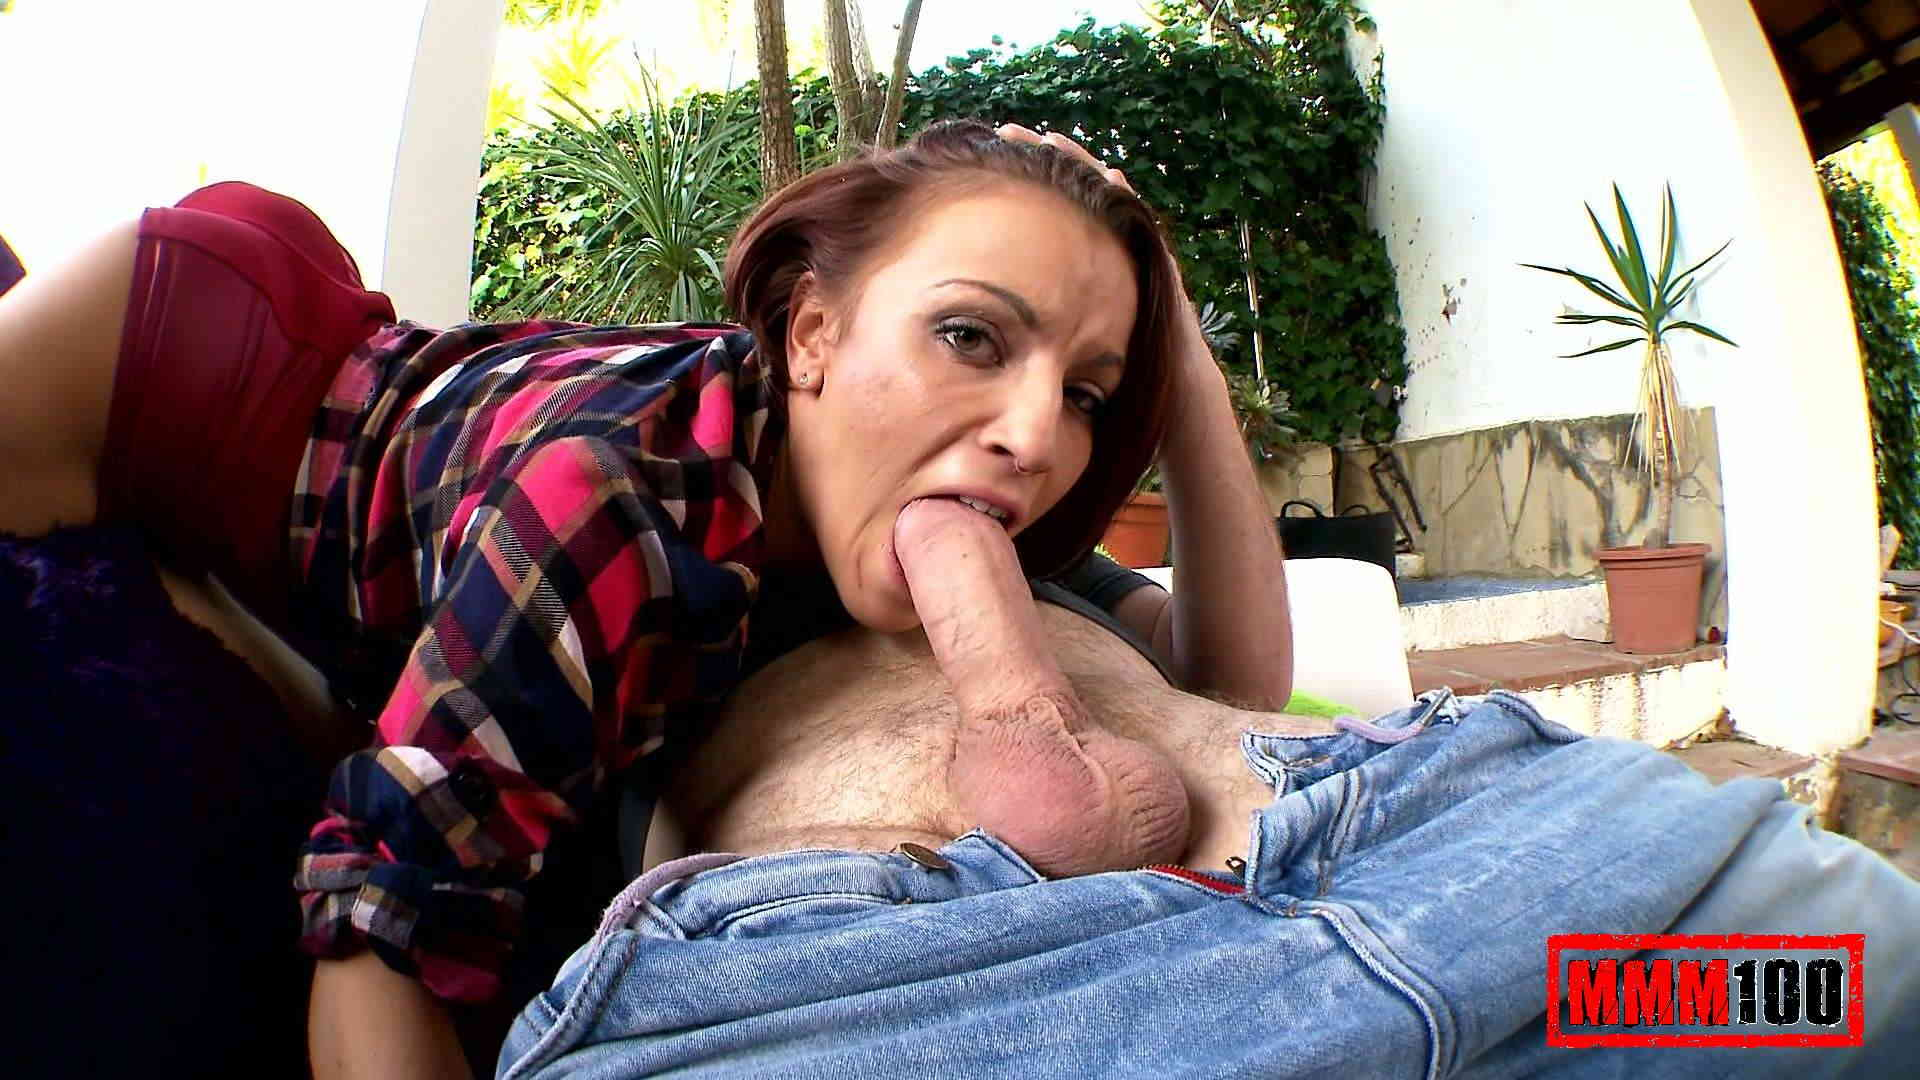 Does gianna michaels do anal